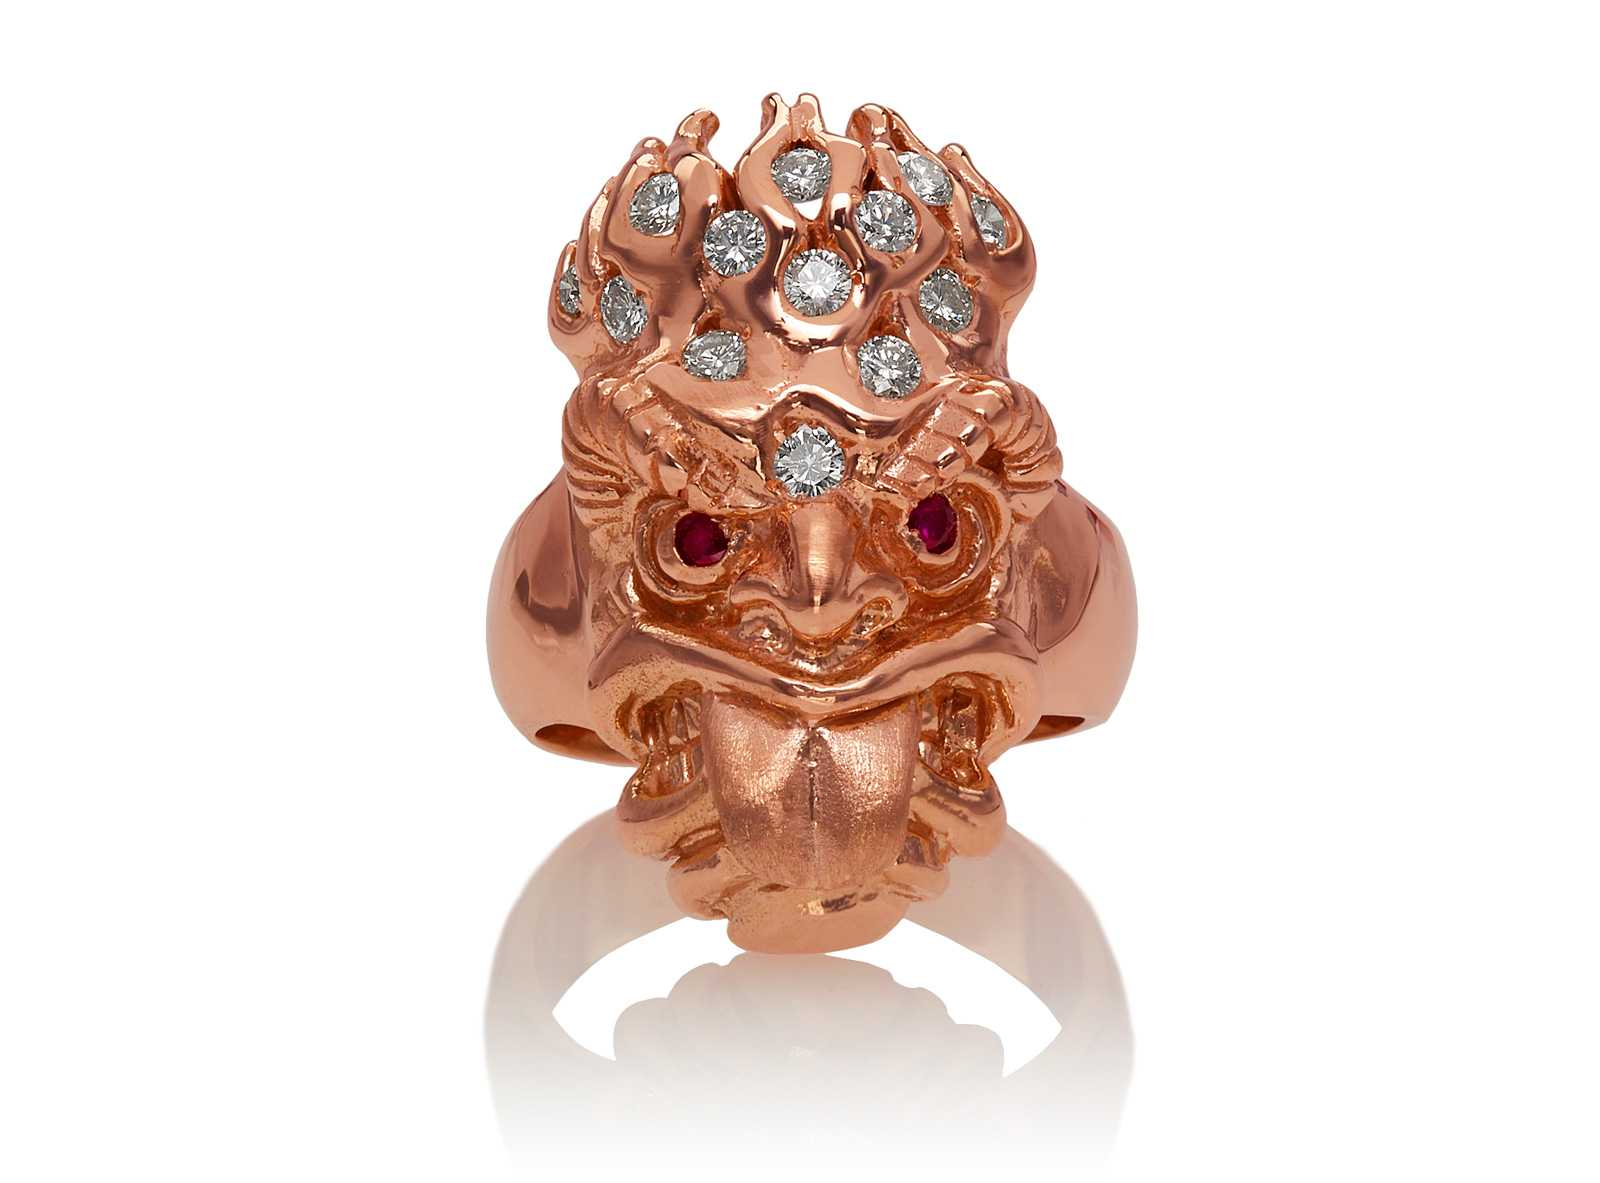 RG7010-RG Ku (Tiki Ring Long Tongue) Rose Gold with White Diamonds (Tiki Collection)